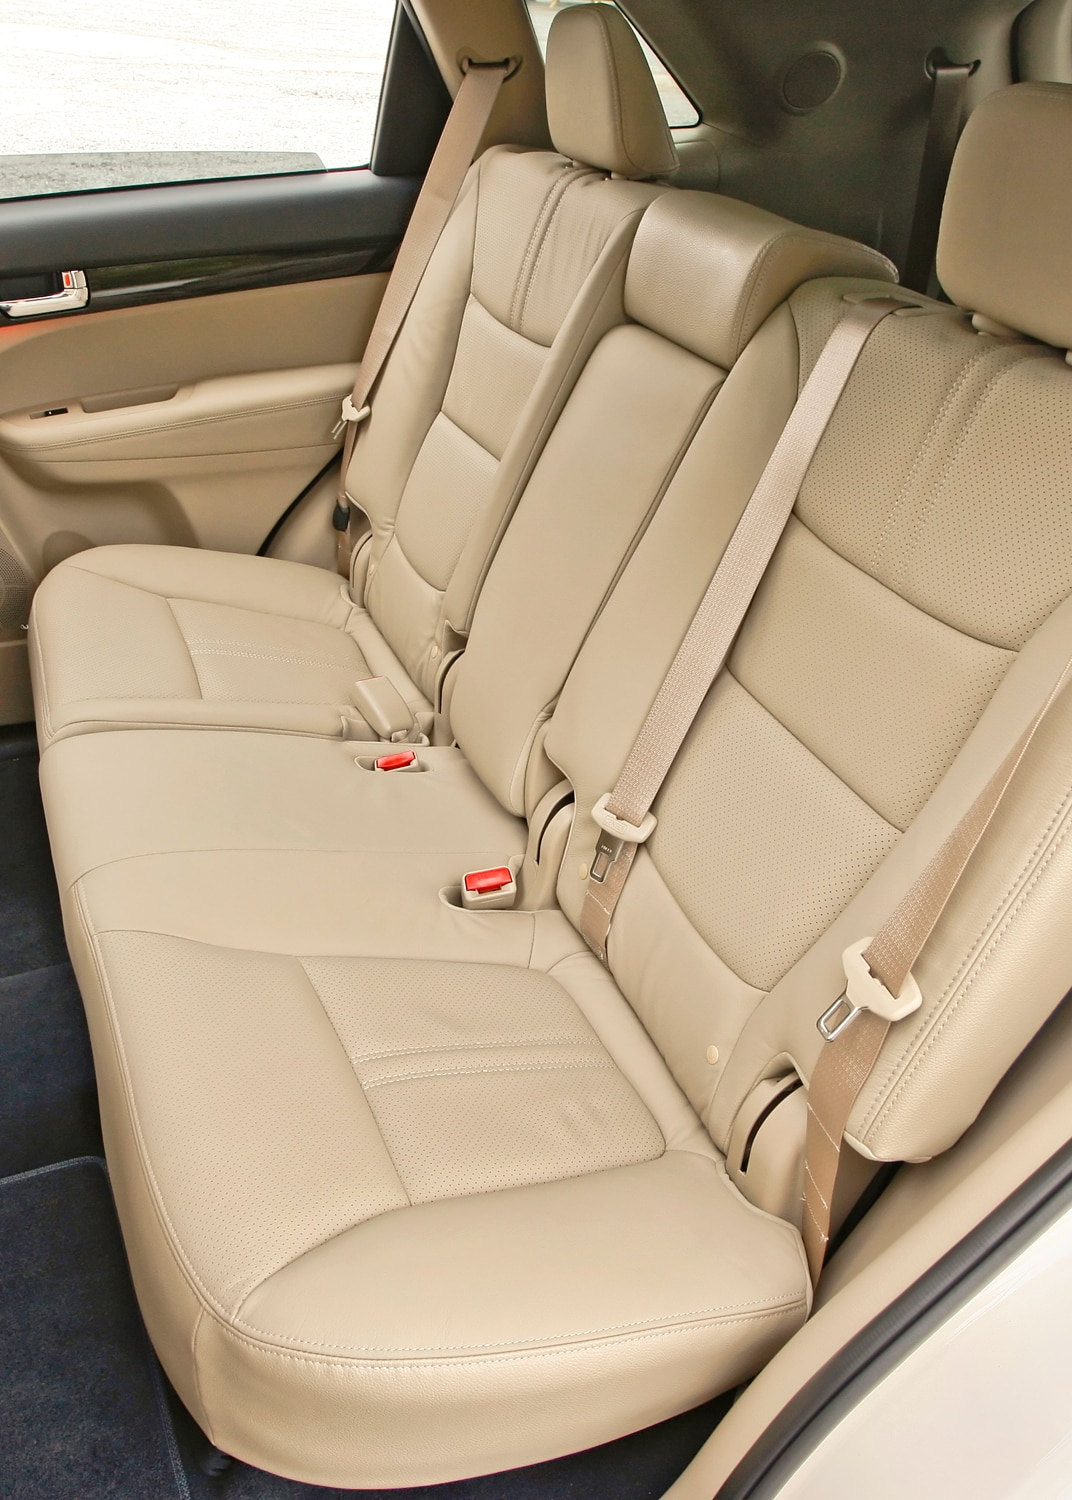 2012 Kia Sorento Rear Seating